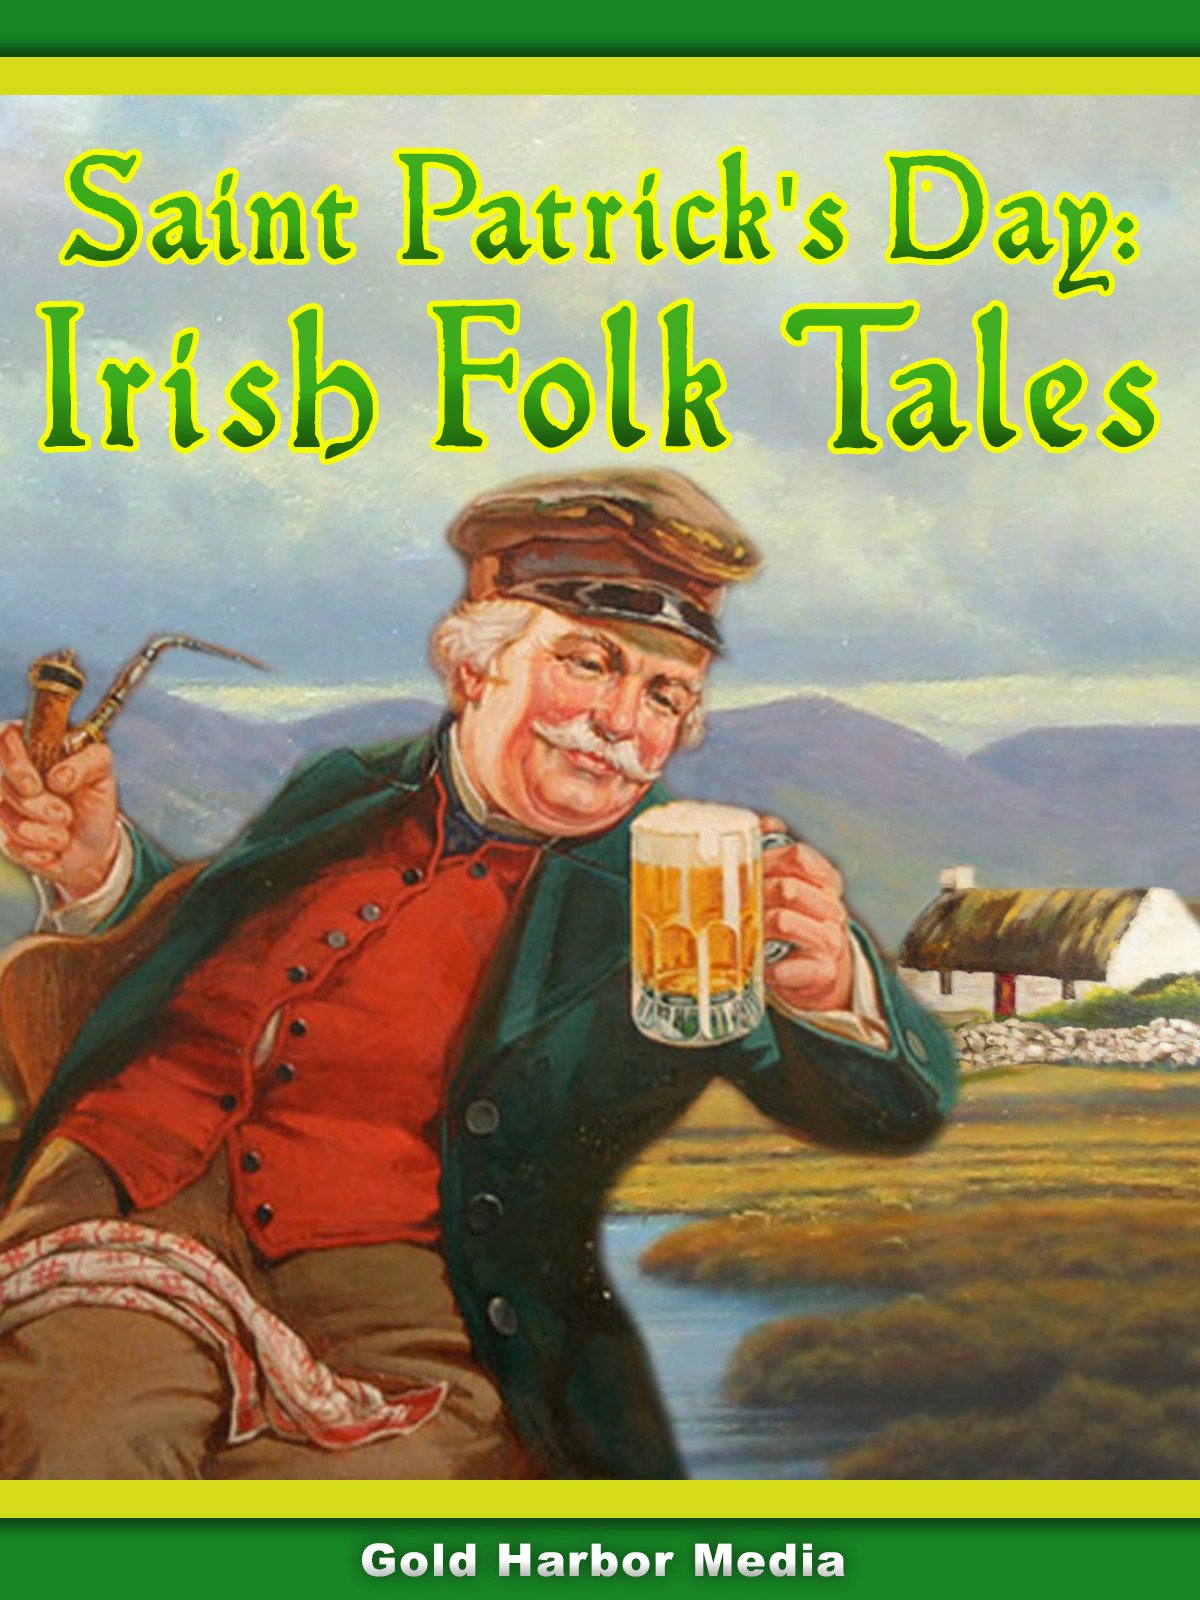 Saint Patrick's Day: Irish Folk Tales